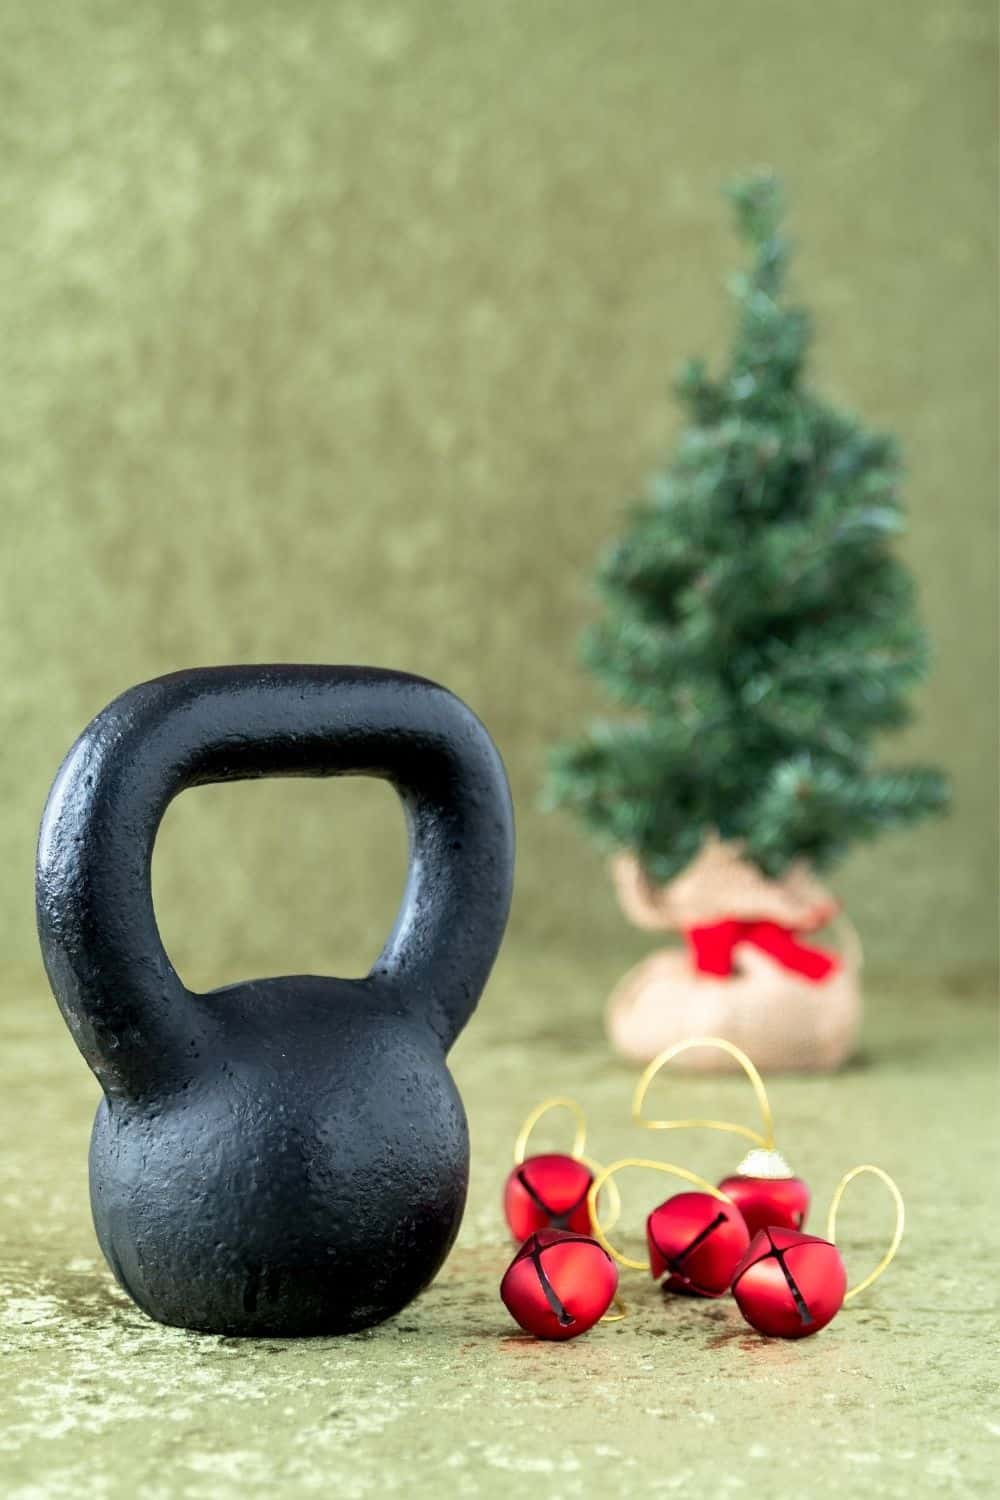 Kettlebell next to a Christmas Tree and Baubles